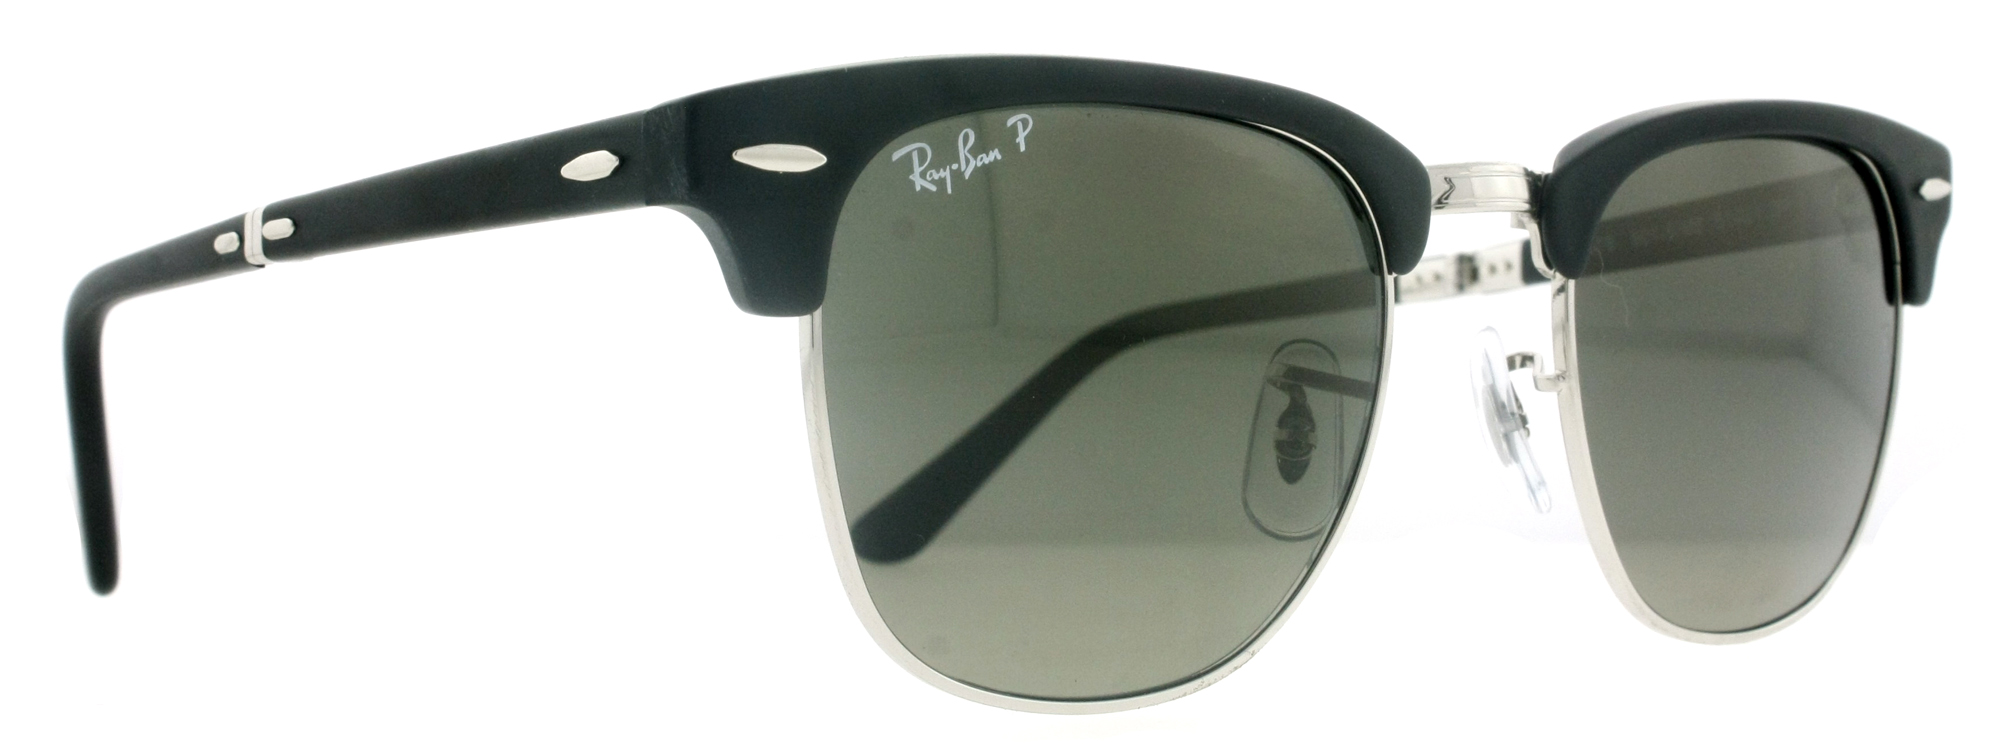 ray ban matte black clubmaster  ray ban rb 2176 clubmaster